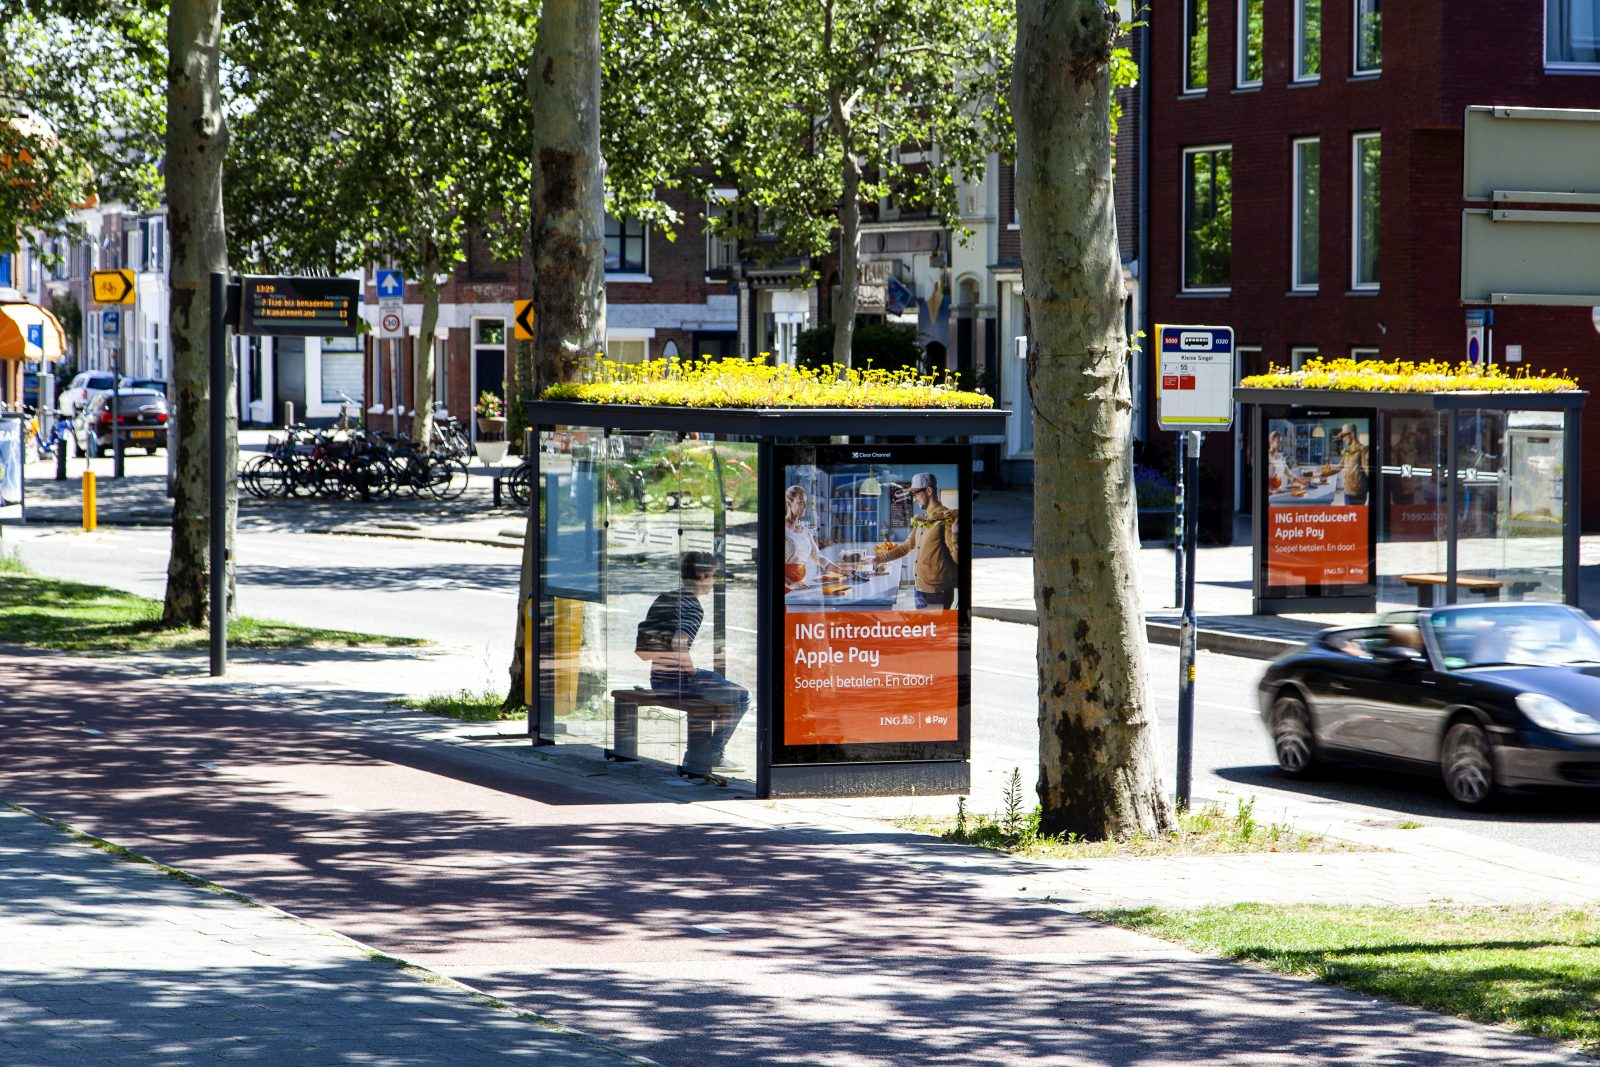 A bus shelter in the city of Utrecht with yellow flowers planted on the roof.